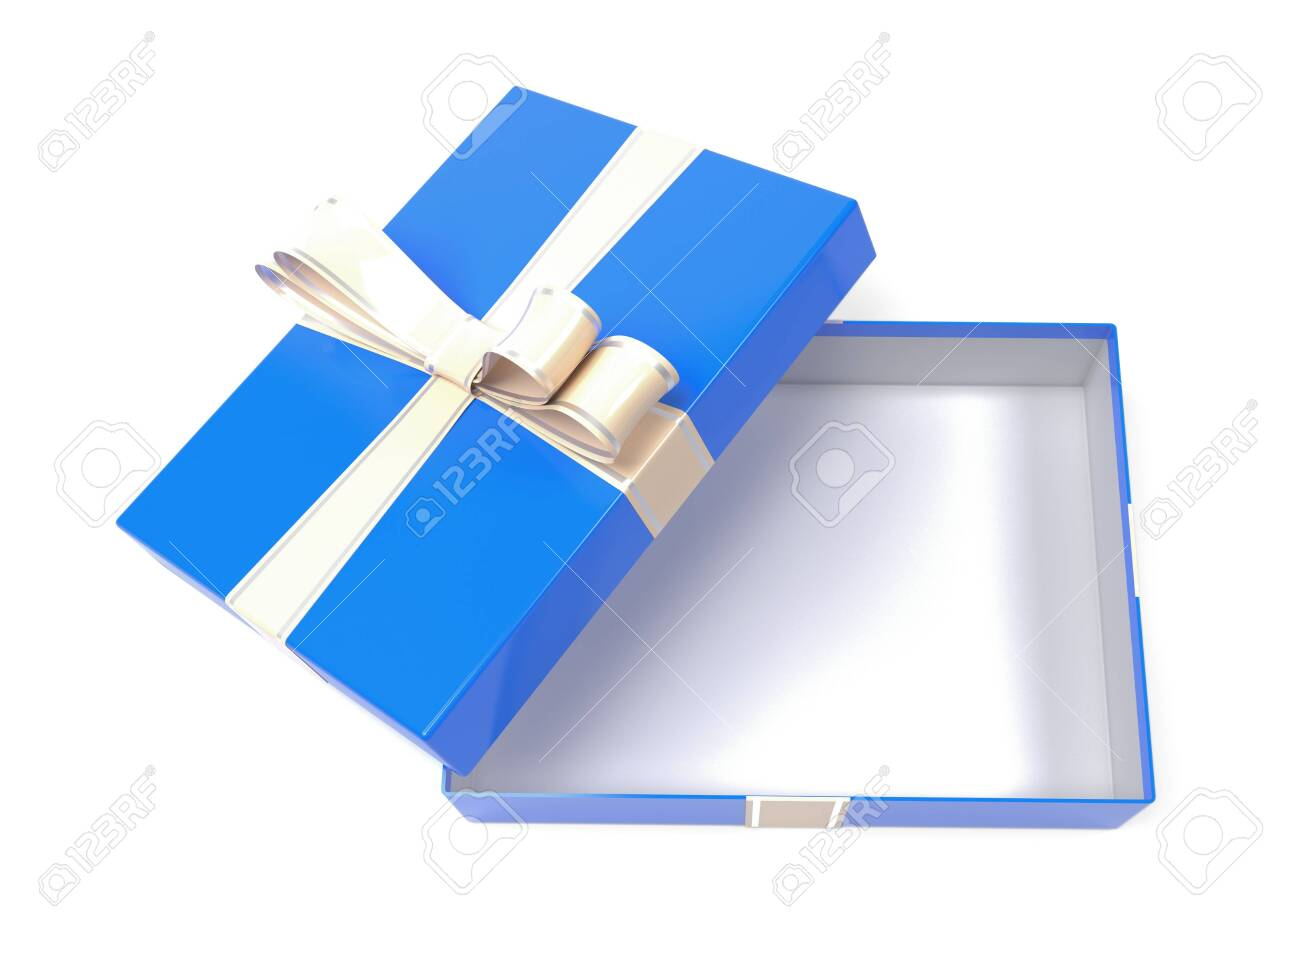 Gift box. Blue empty box with a bow. 3d rendering illustration isolated on white background - 150520964